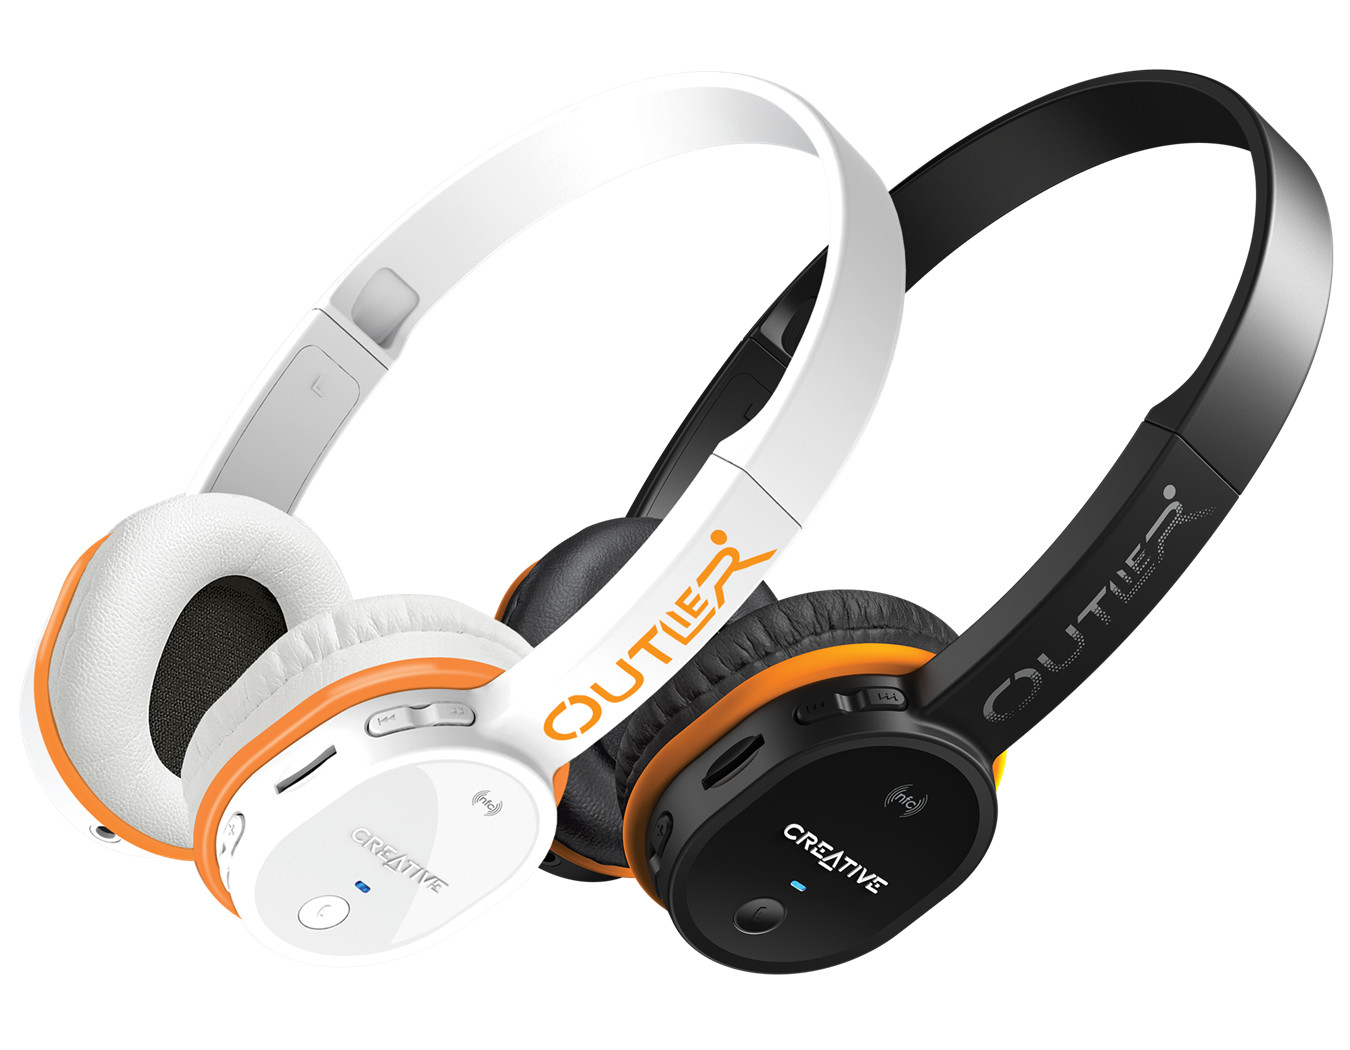 d2772fbcff2 The Creative Outlier also allows users to customize the look and feel of the  headphones. The Creative Outlier comes in two colors: pristine white or  bold ...